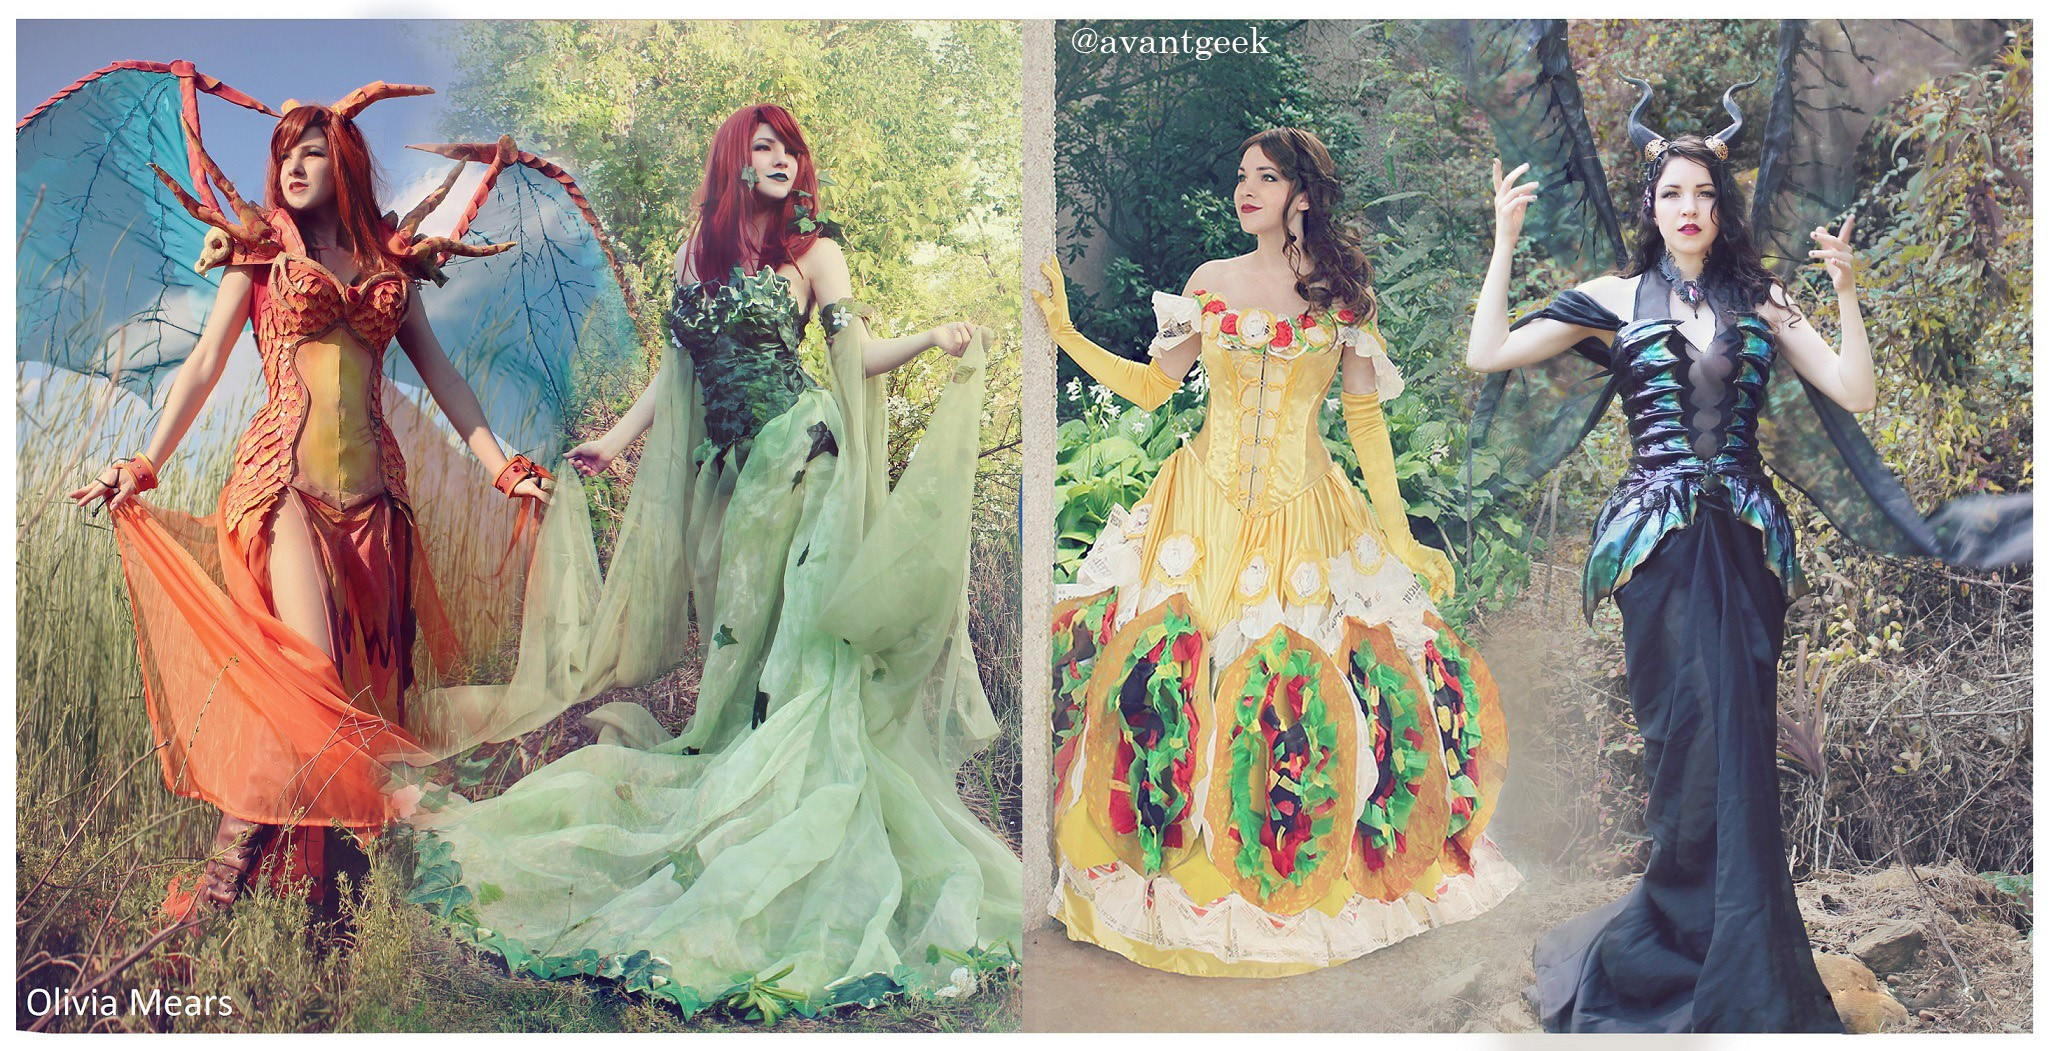 Dresses created by and worn by Olivia Mears/AvantGeek (Olivia Mears, AvantGeek)